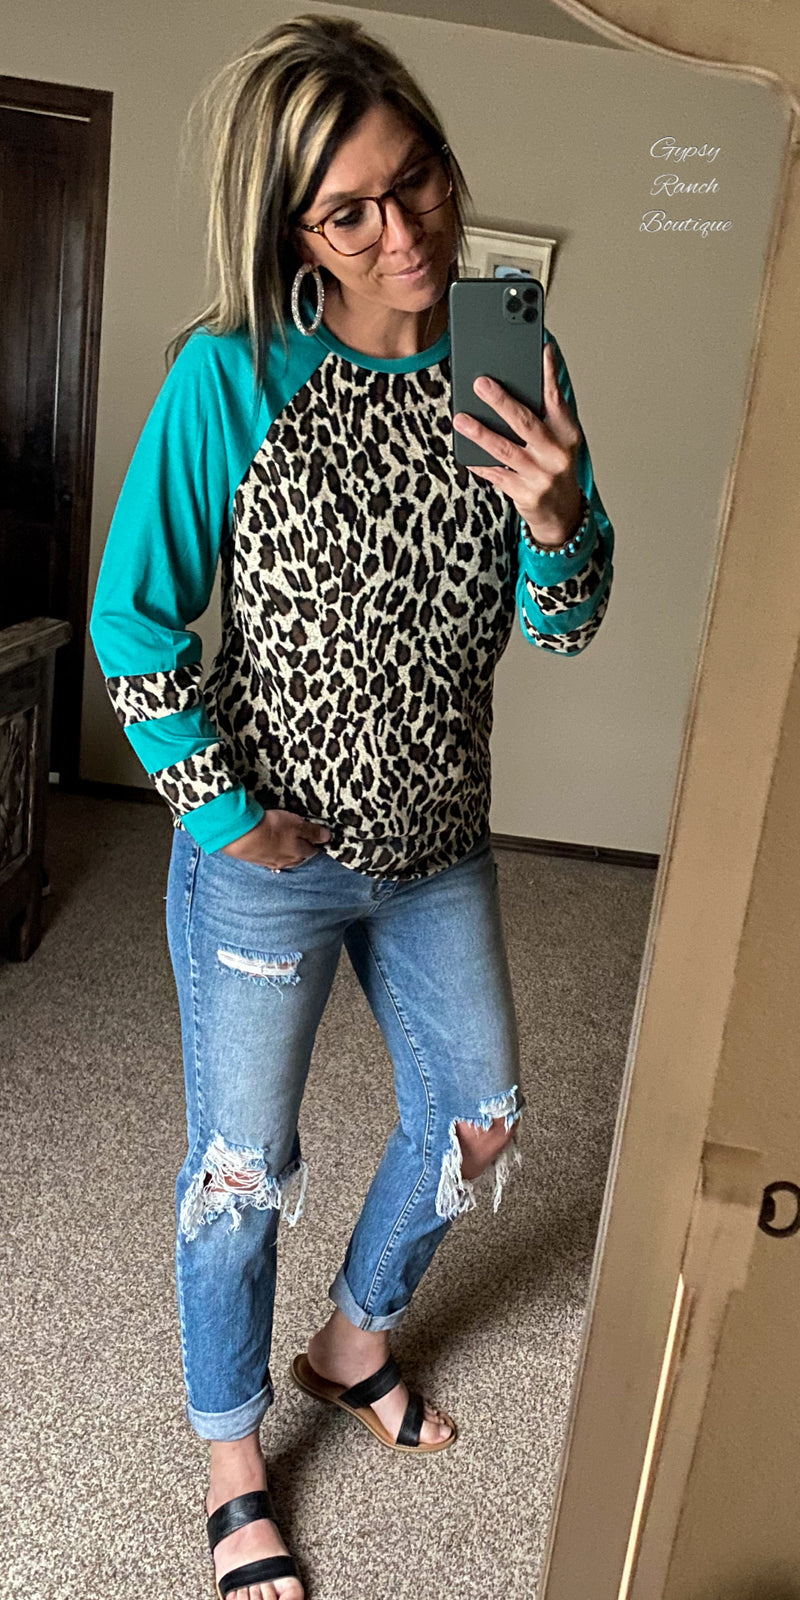 Wimberlee Turquoise Leopard Top - Also in Plus Size